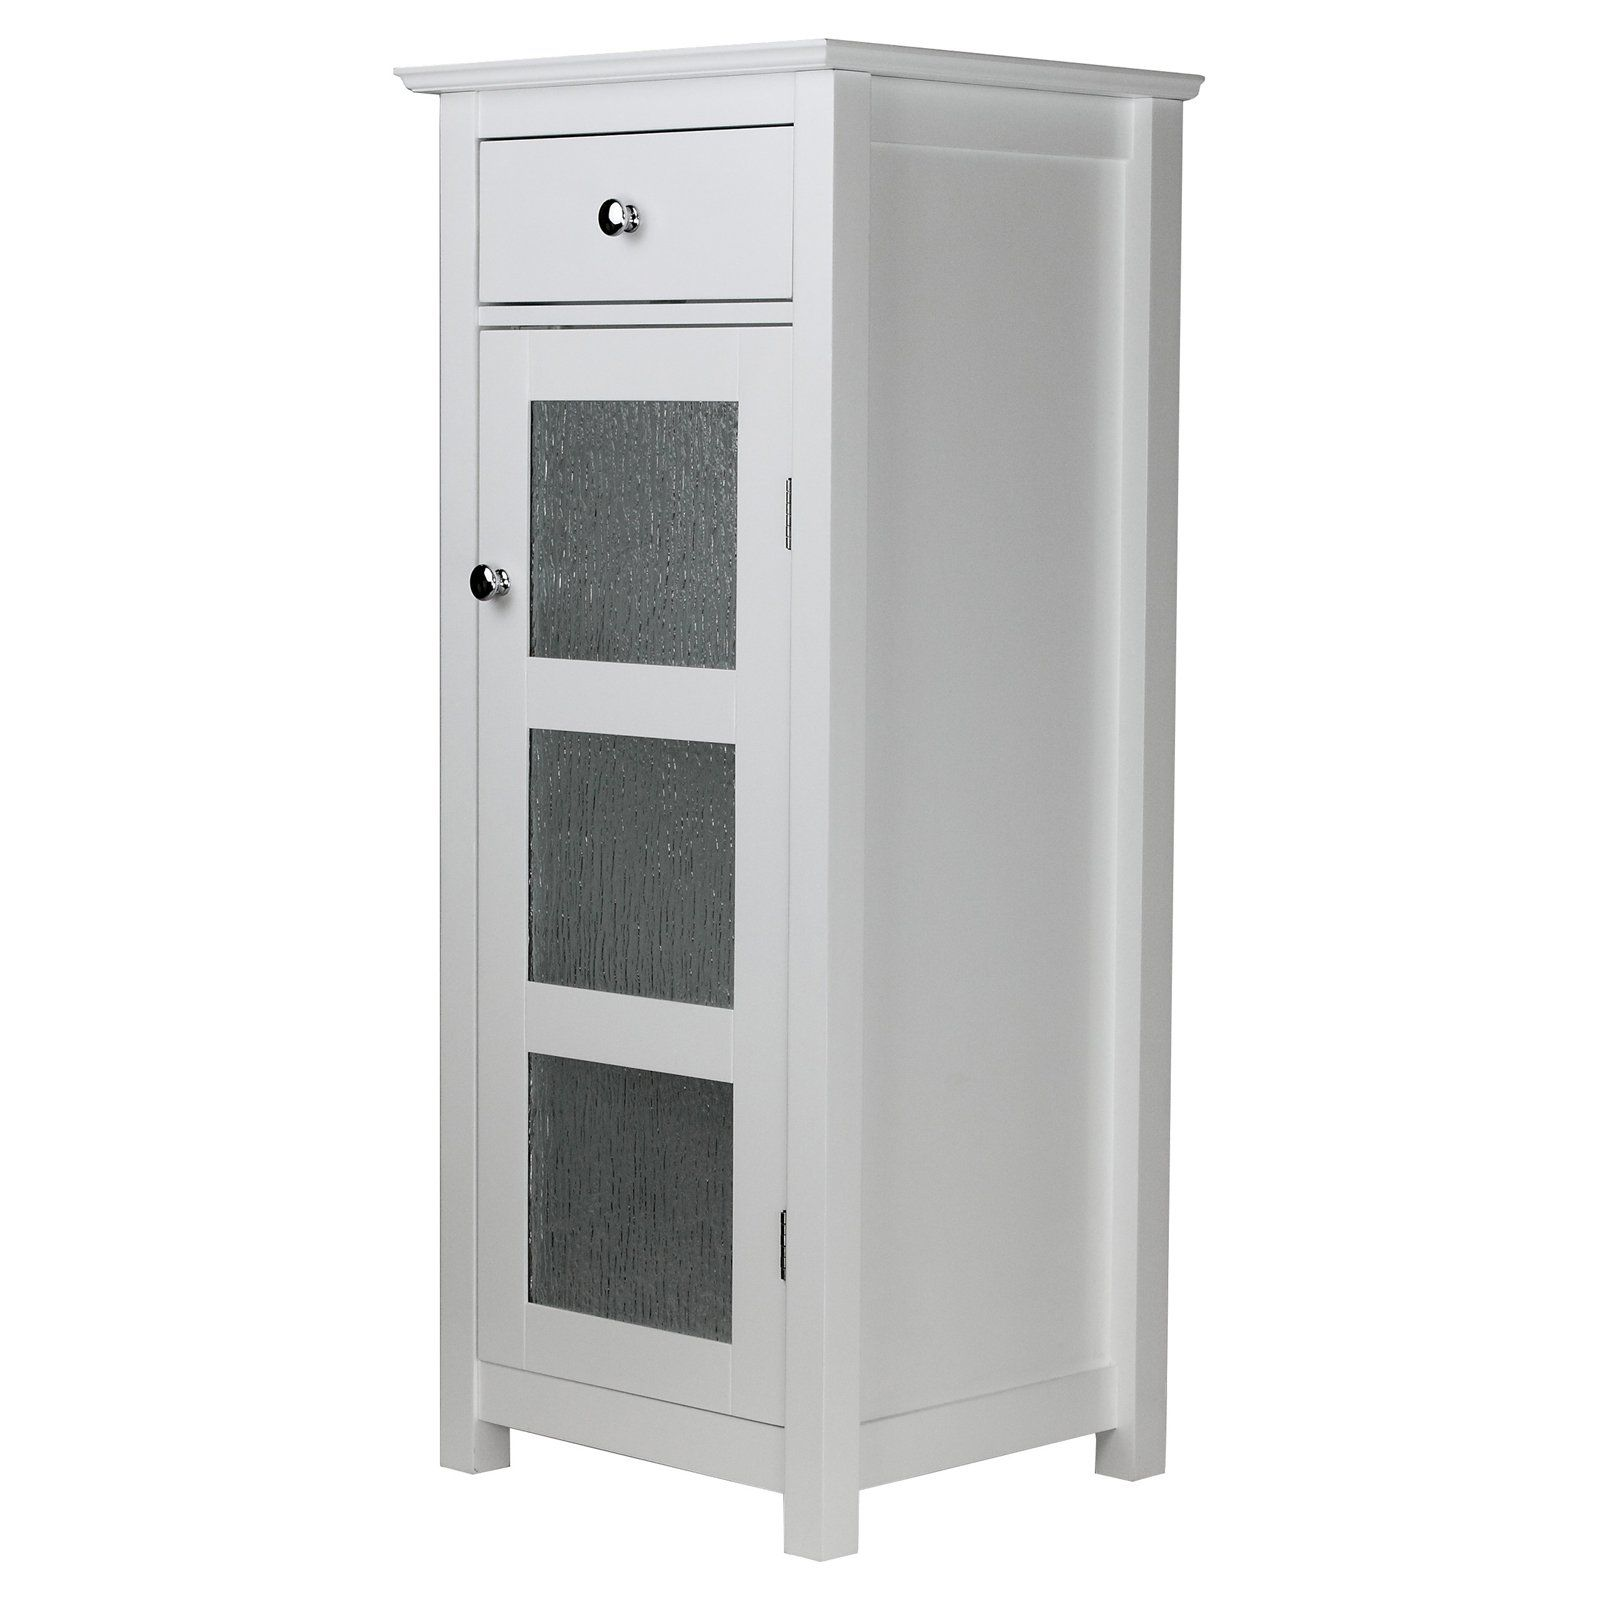 Elegant Home Fashions Connor 1 Door Floor Cabinet With Drawer Bathroom Floor Cabinets Cabinet Shelving Wood Storage Cabinets